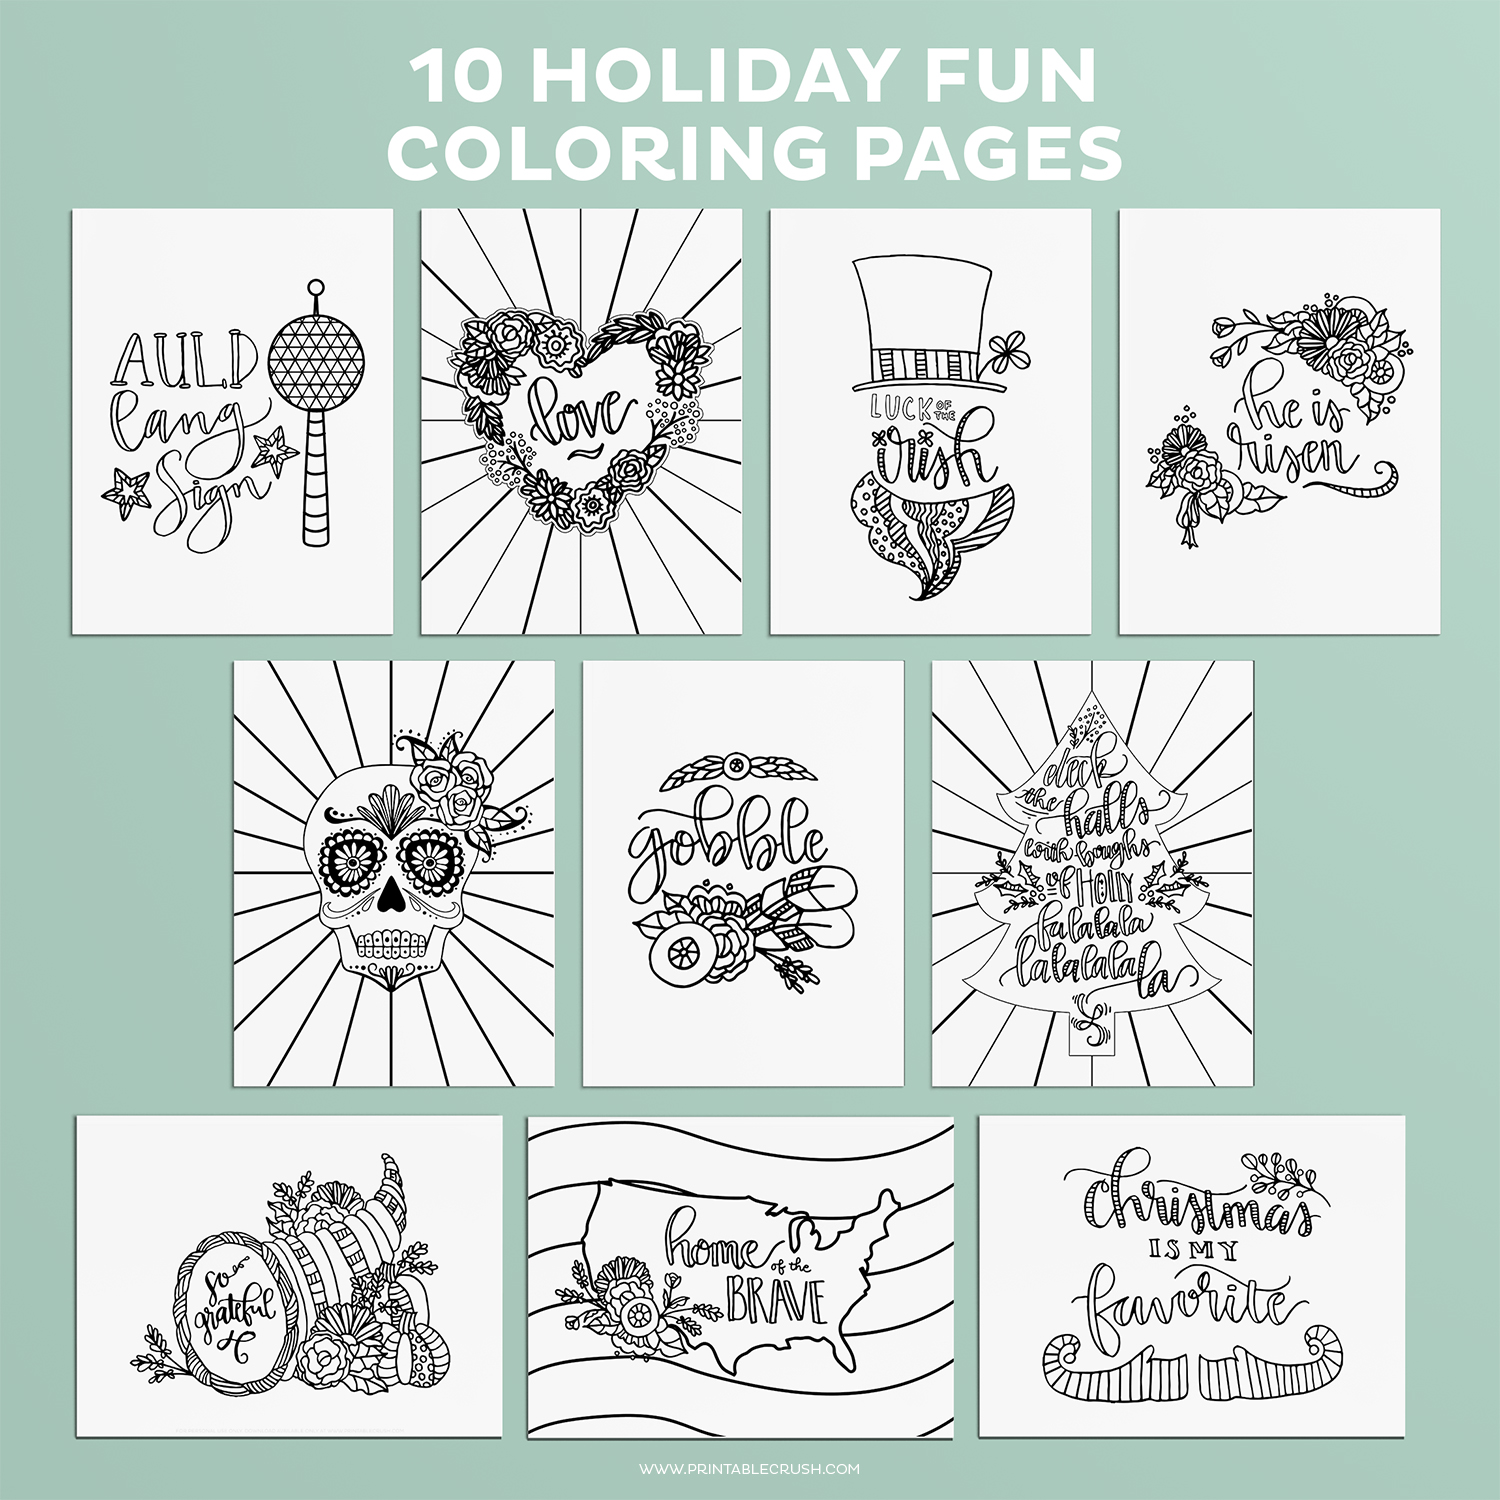 Enjoy Coloring these Holiday Coloring Pages for Adults or Kids! Includes 10 pages for the major US Holidays.